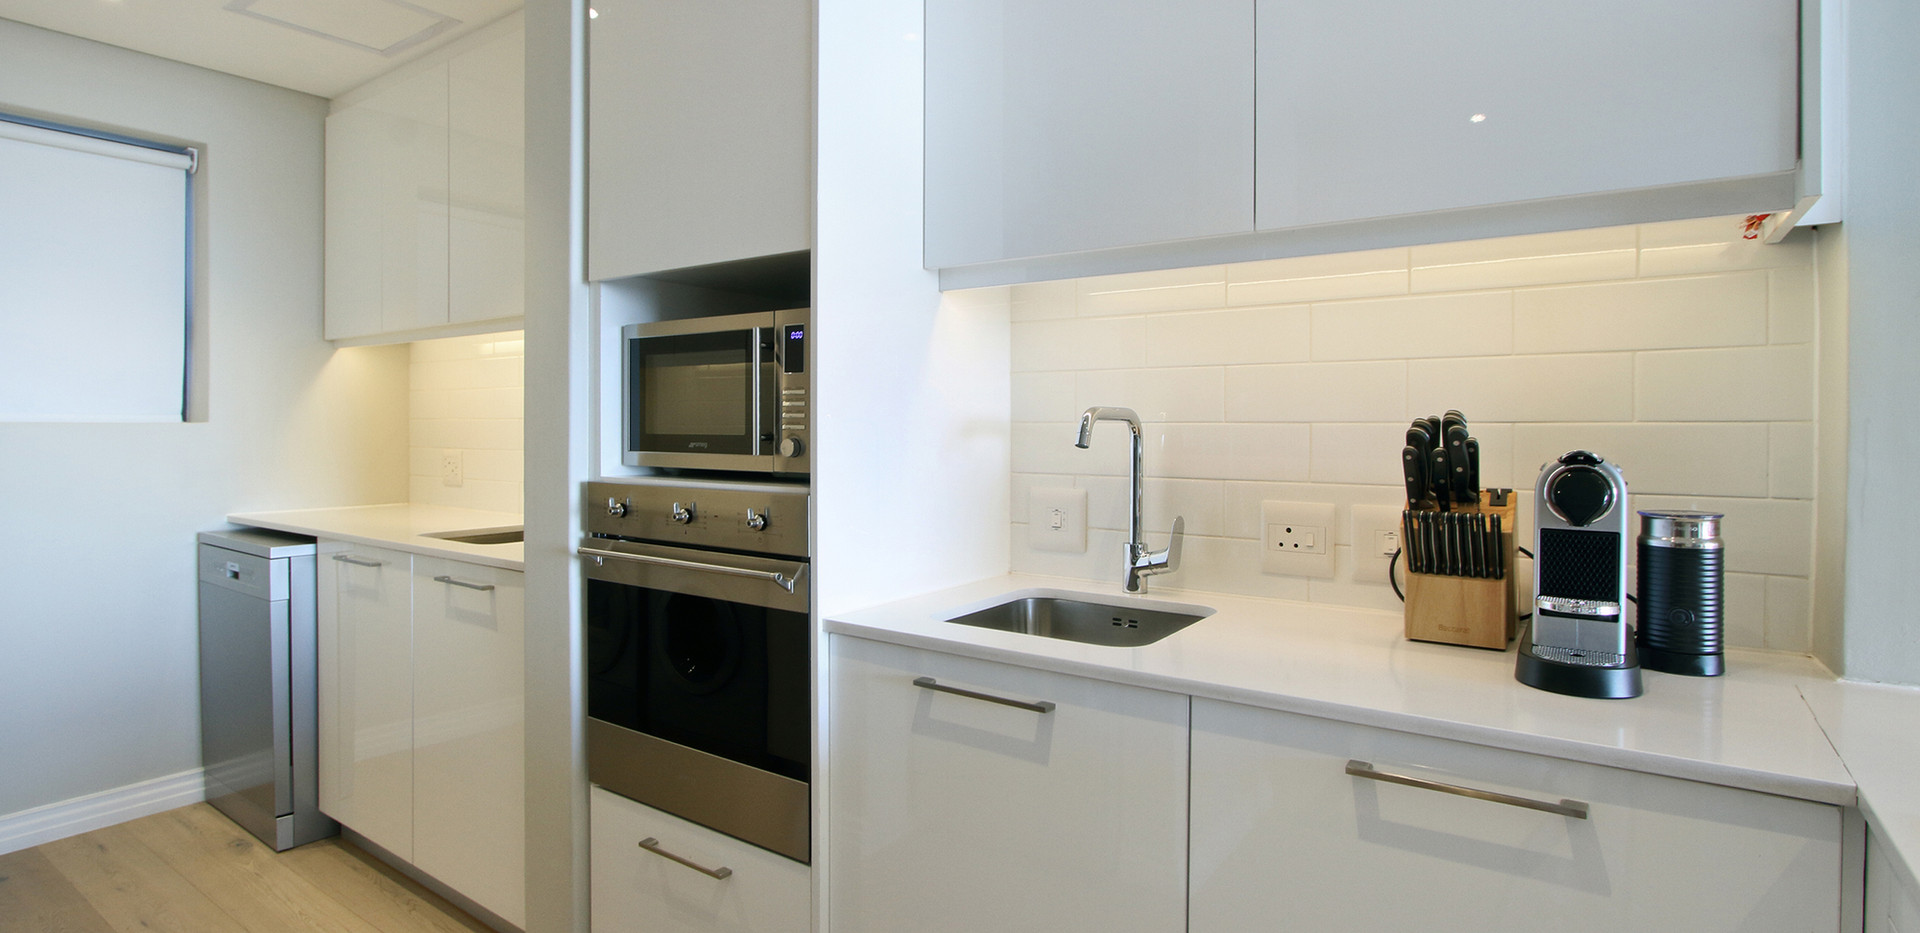 Kitchen_Penthouse_Docklands_609_ITC_3.jp